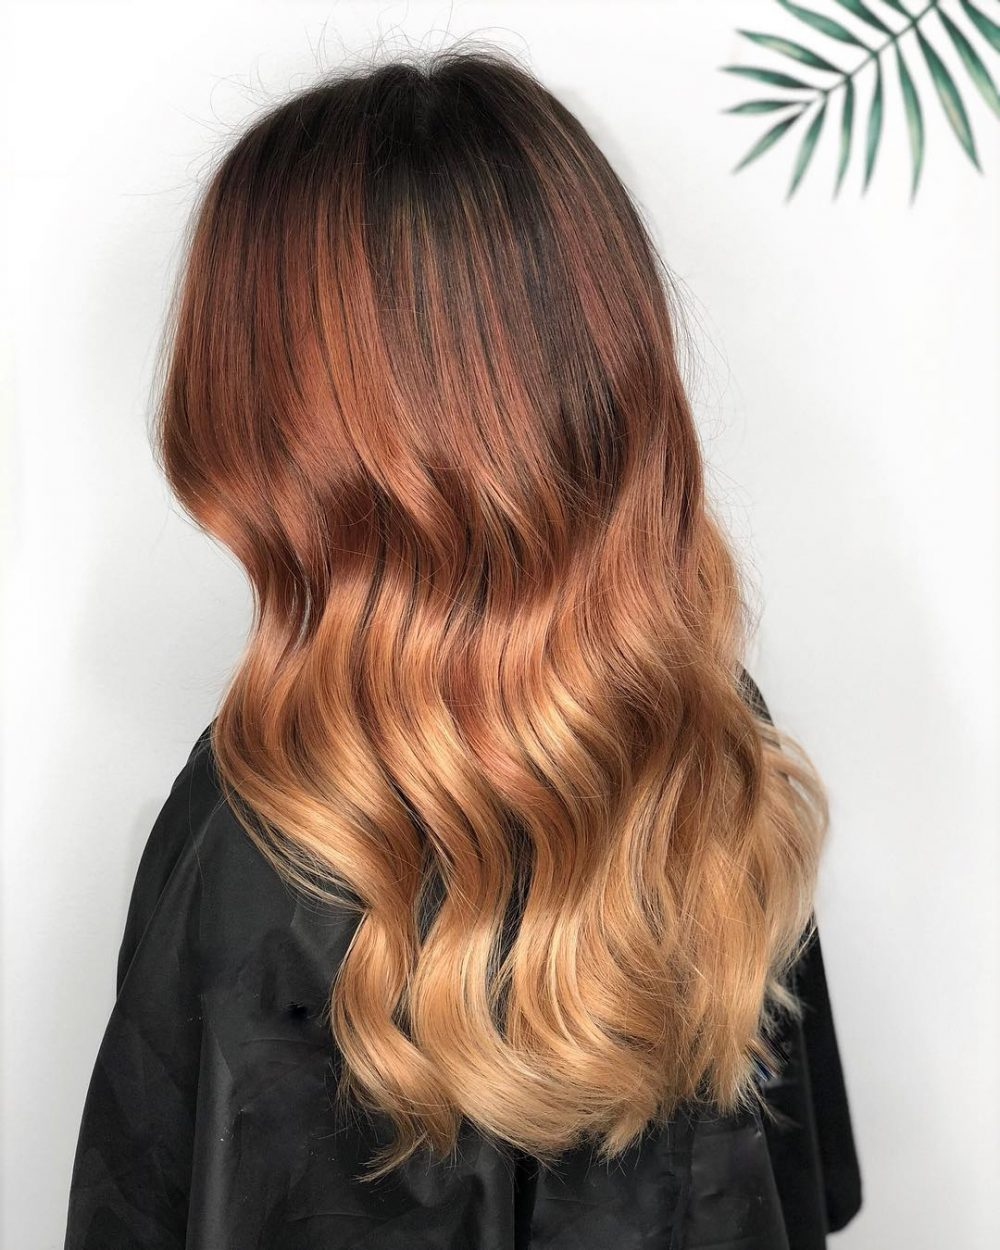 Melted Auburn Waves hairstyle